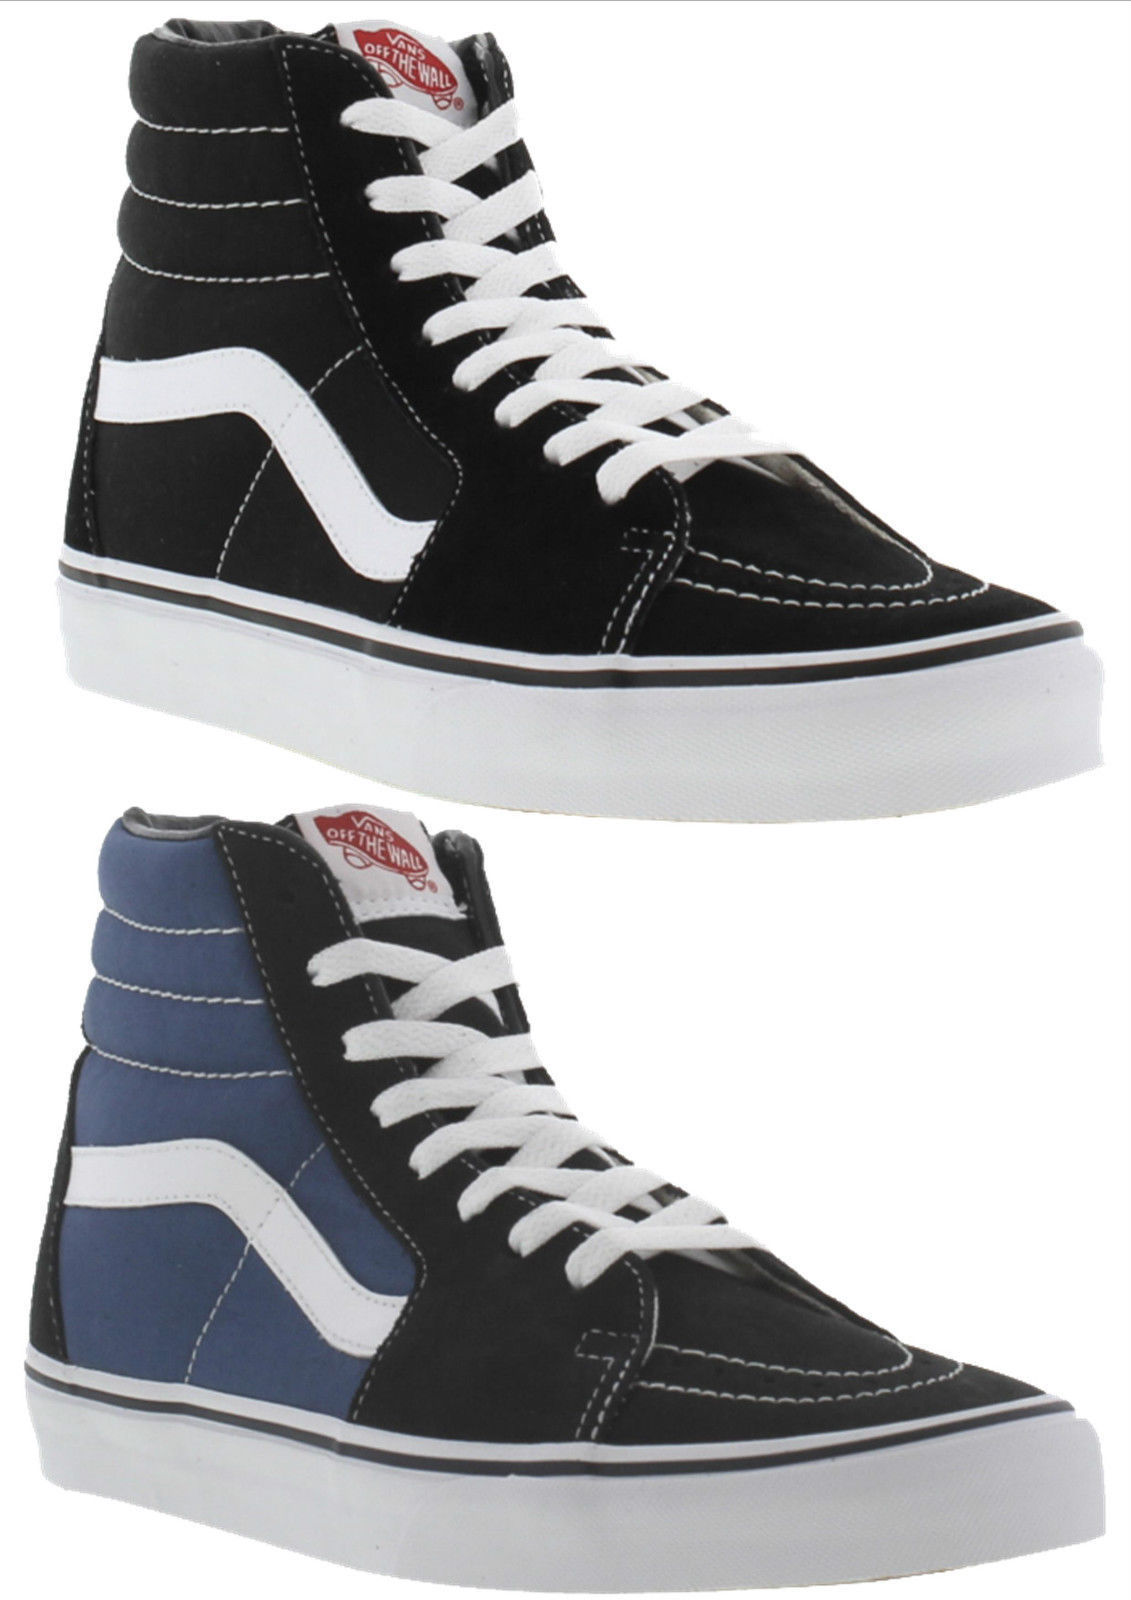 Vans SK8 Hi Tops Black Blue Canvas Mens Womens High Top Trainers ... c49d33ef7